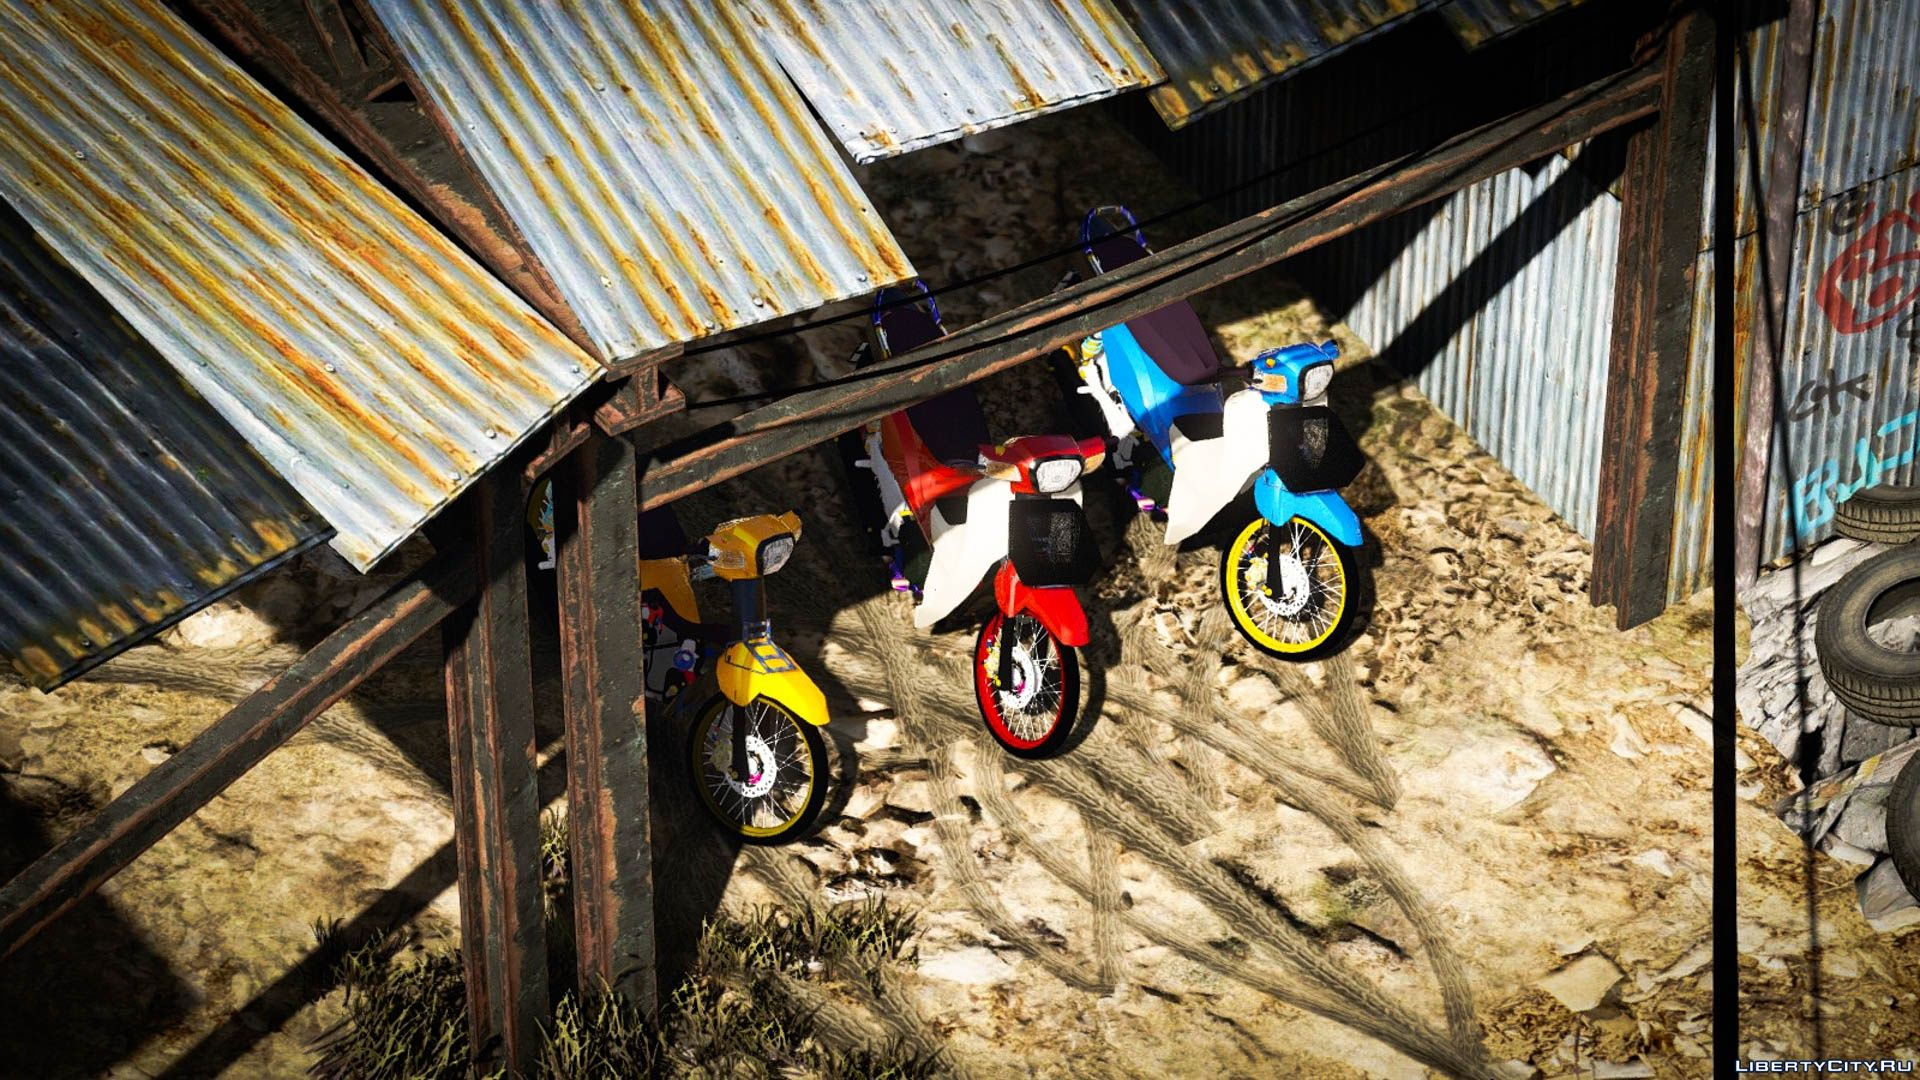 Honda Dream Super Cub 110i 2017 1 0 For Gta 5